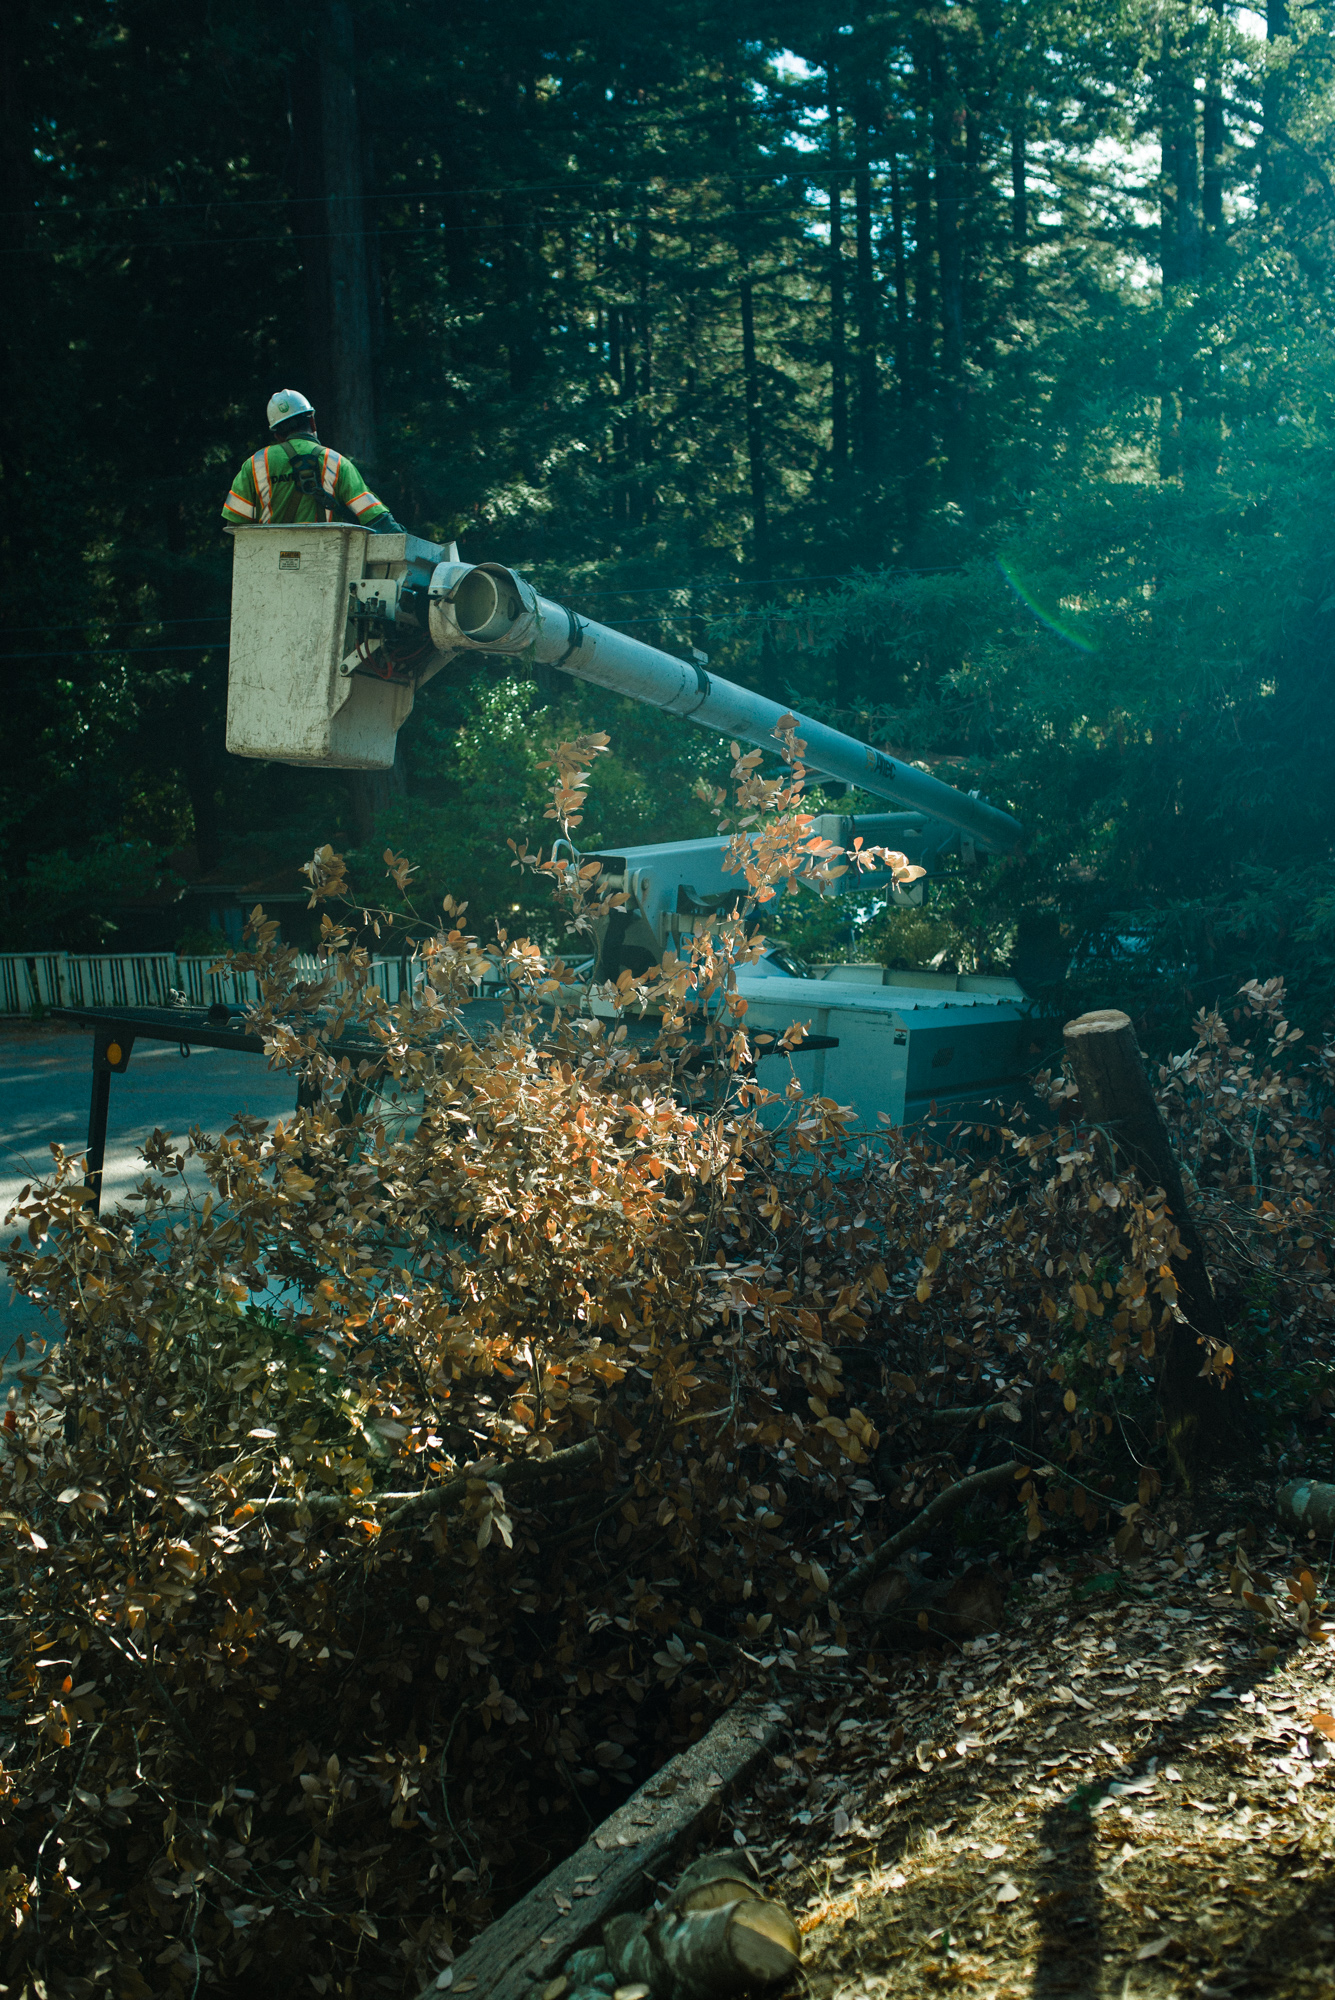 Tree workers remove marked tree in a neighborhood, September 2018.